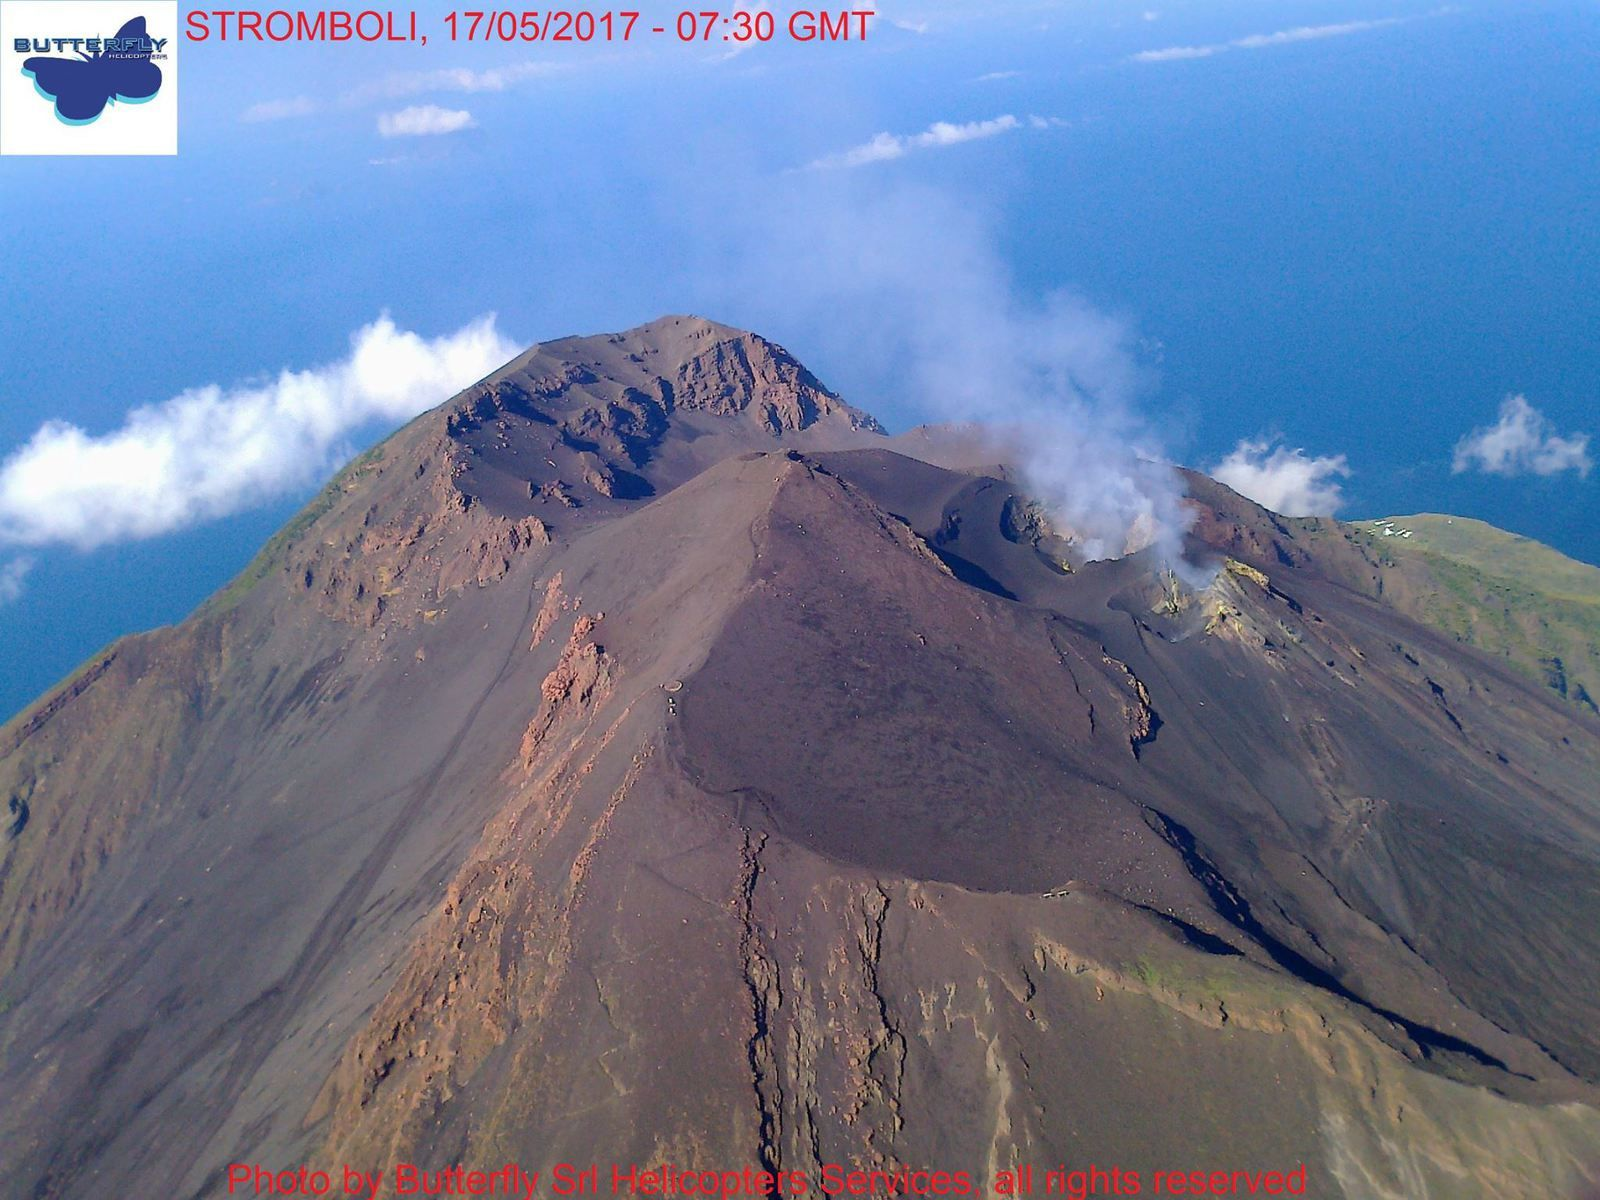 Stromboli - 17.05.2017 / 7:30 GMT - a beautiful view of the peaks by Butterfly helicopters Jos. Nasi